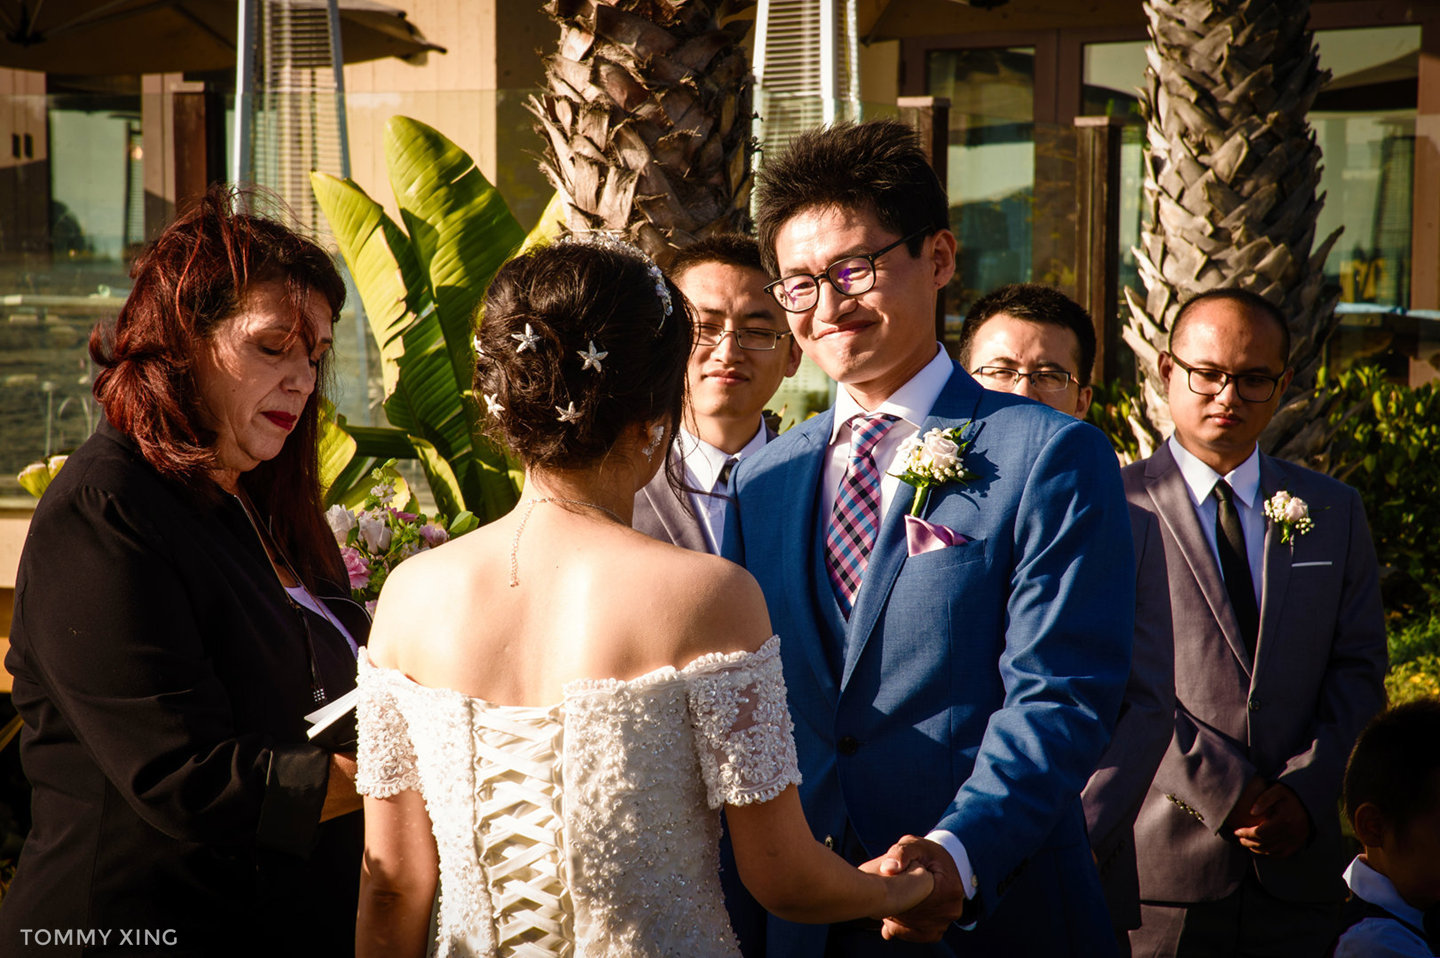 Paradise Point Resort Wedding Xiaolu & Bin San Diego 圣地亚哥婚礼摄影跟拍 Tommy Xing Photography 洛杉矶婚礼婚纱照摄影师 133.jpg